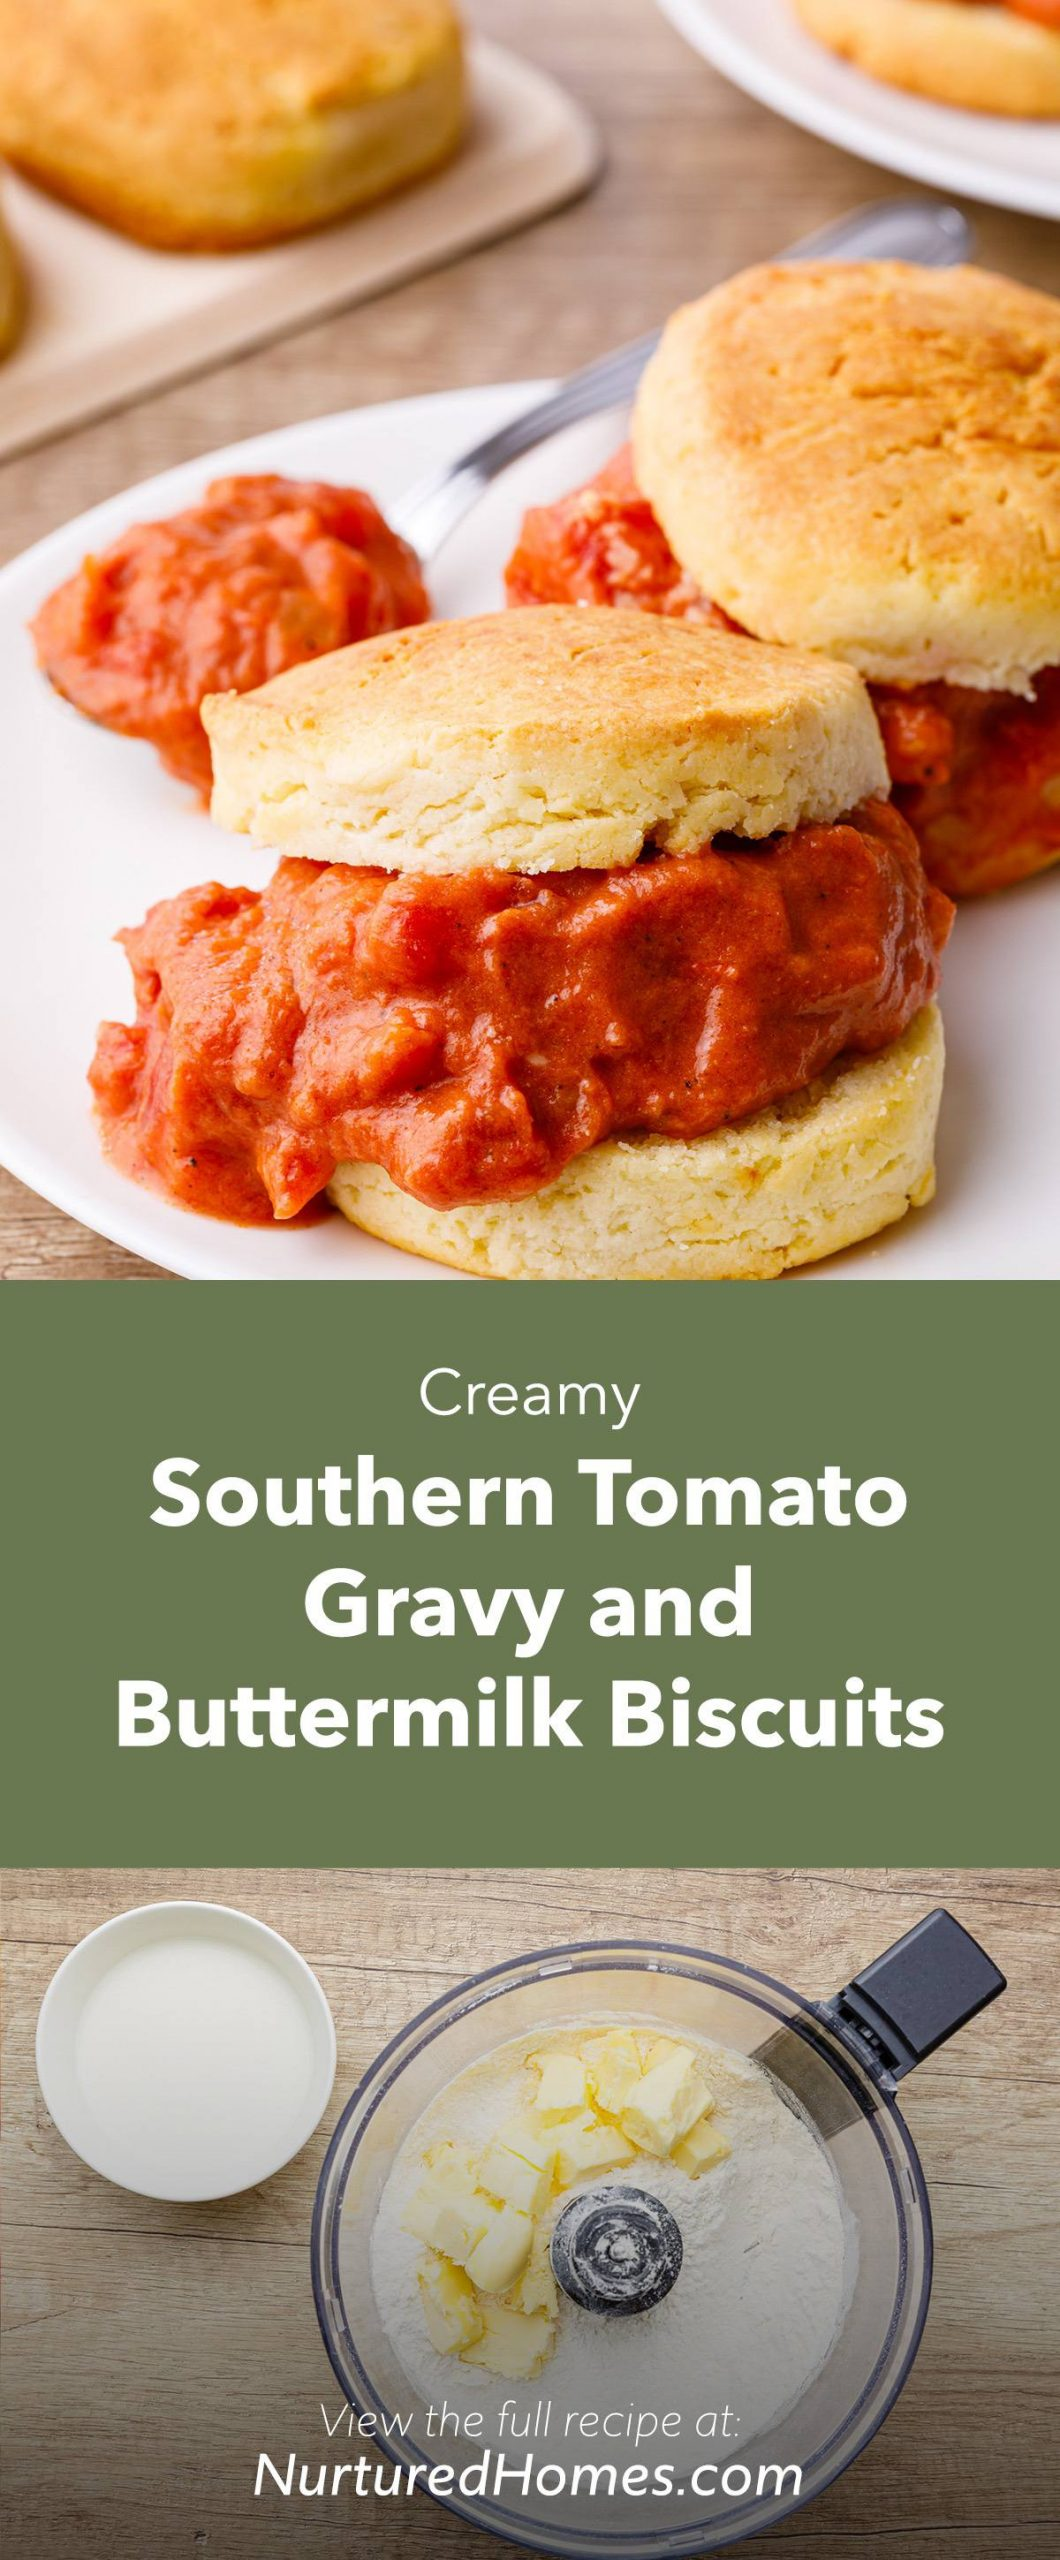 Creamy Southern Tomato Gravy and Buttermilk Biscuits